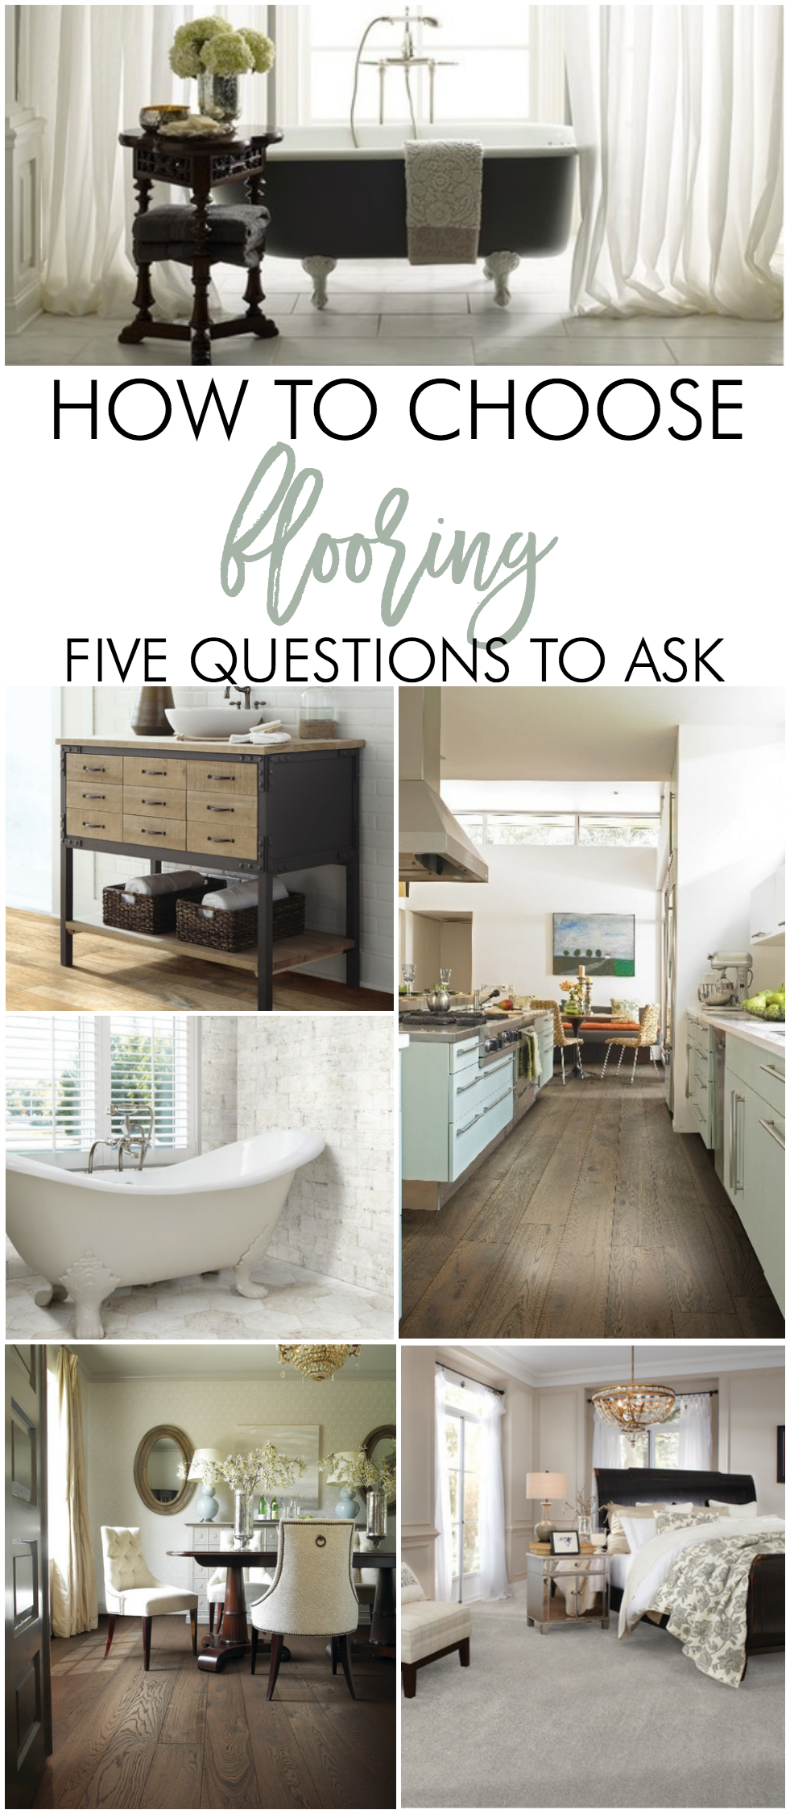 How to choose flooring 5 vital questions to ask for How to choose flooring for your home